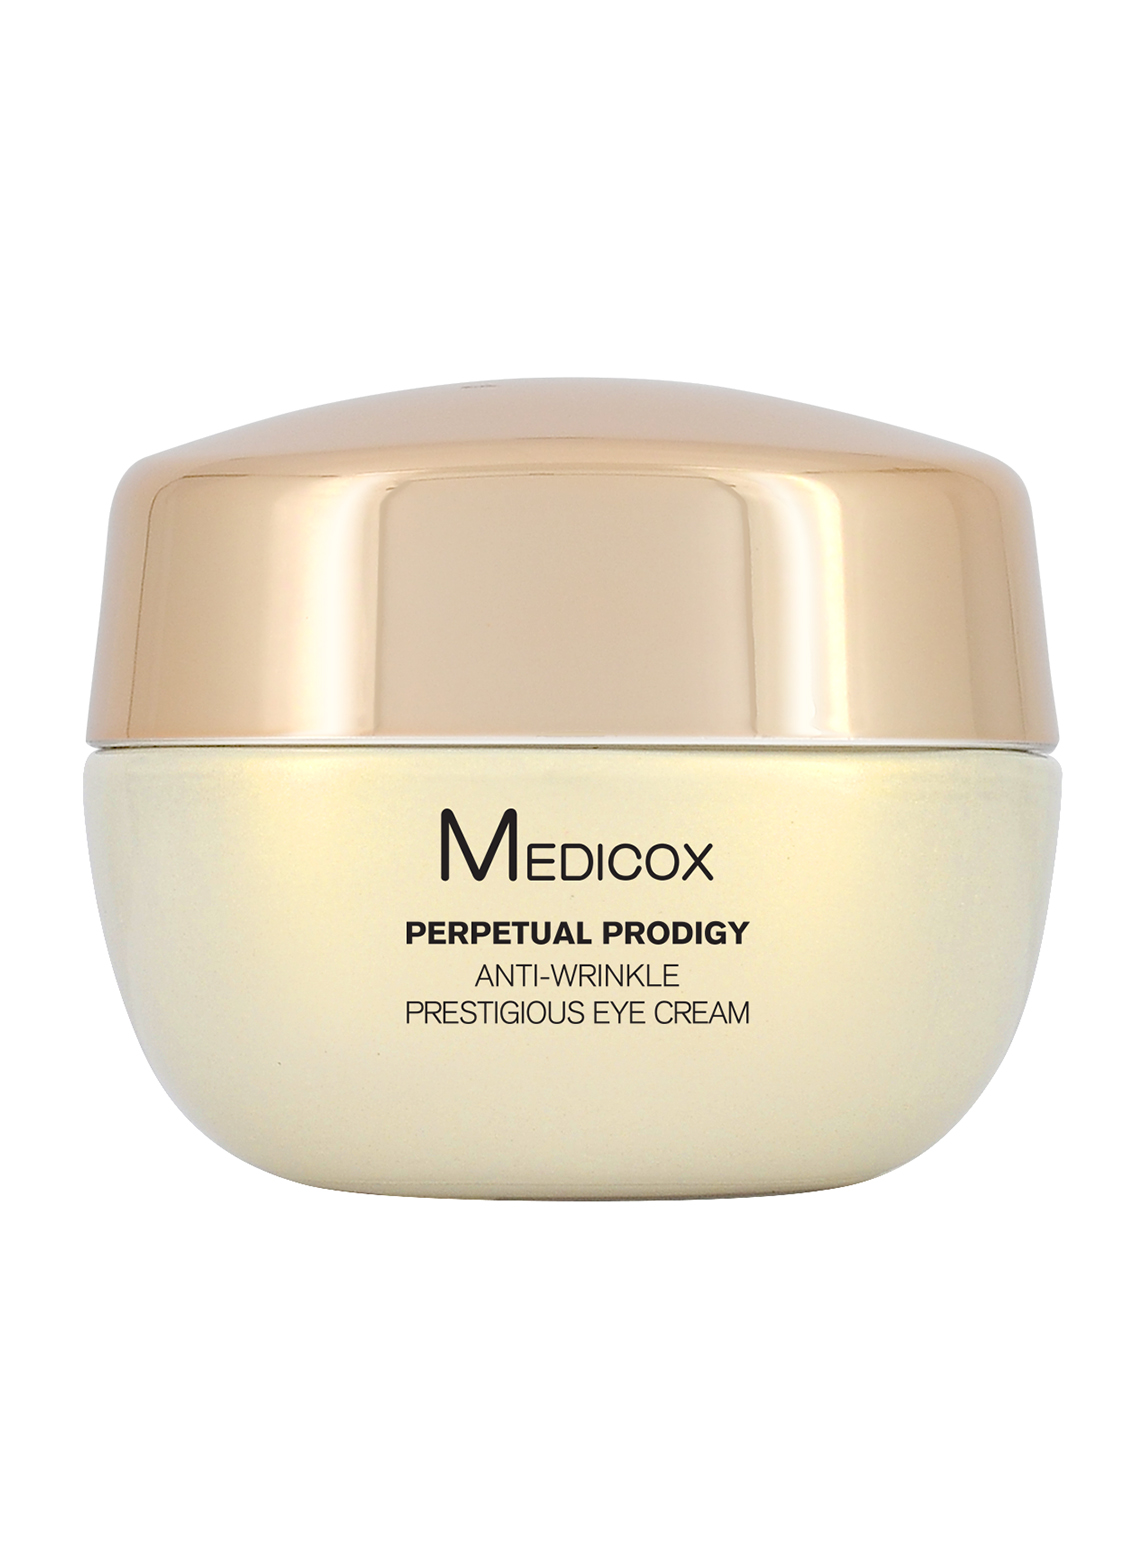 Perpetual Prodigy Anti-Wrinkle Prestigious Eye Cream